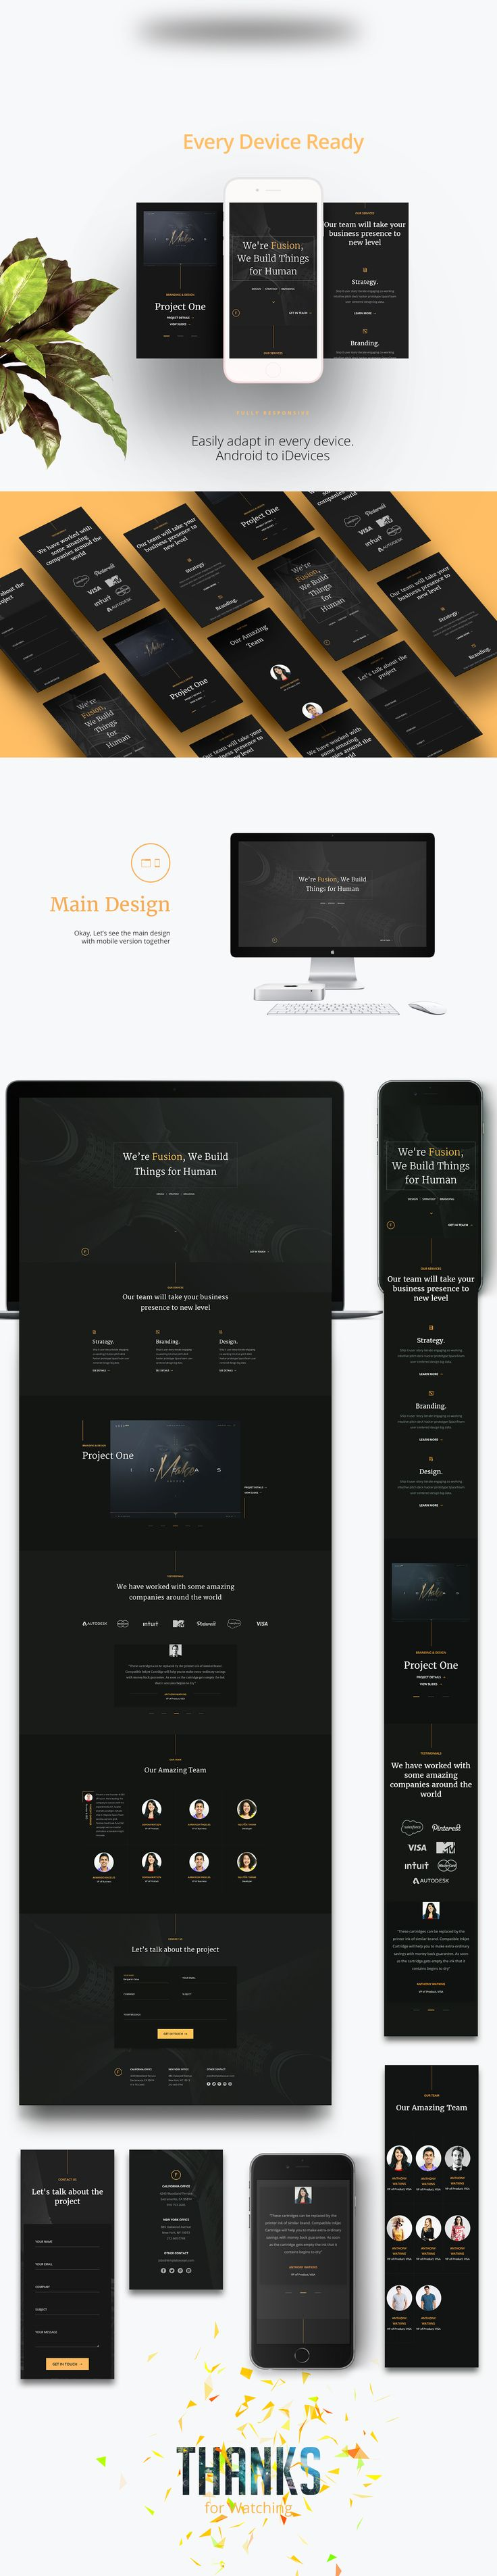 Fusion is a free portfolio template for personal portfolio website or agency website built with HTML5 and CSS3. Showcase your personal or agency projects and services beautifully with this template.Fusion is bootstrap portfolio template. Here is the mai…